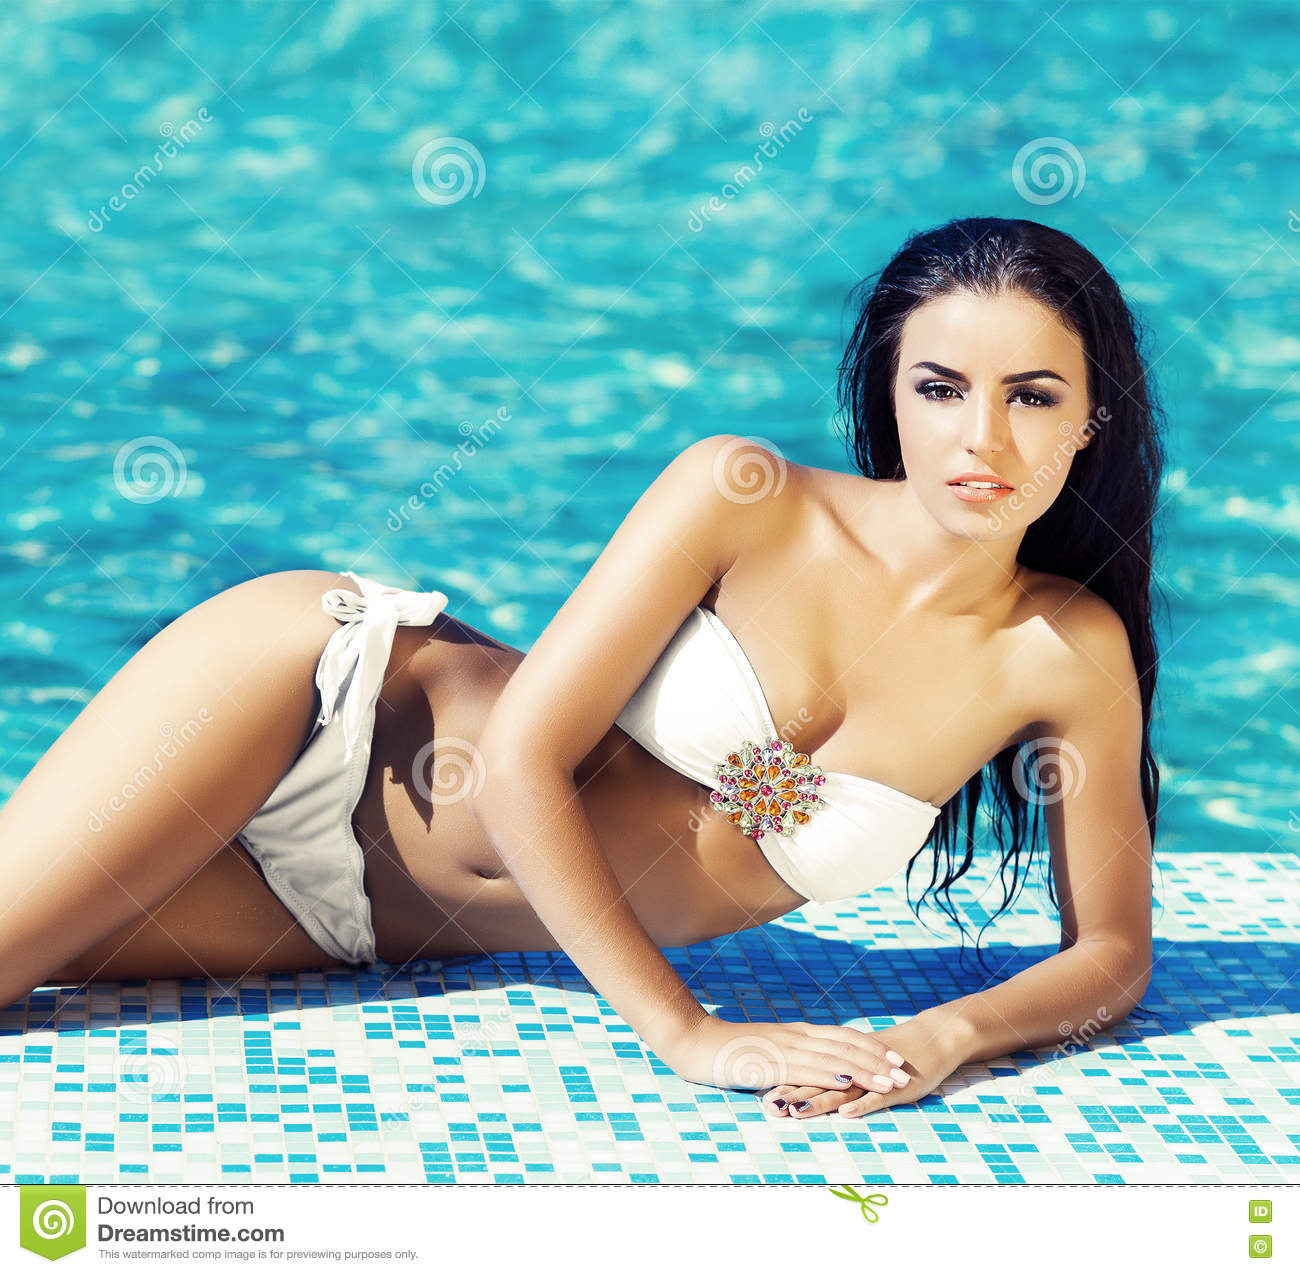 6d9ba7f646c80 Seductive Young Woman In A Swimsuit Posing Next To A Pool Stock ...